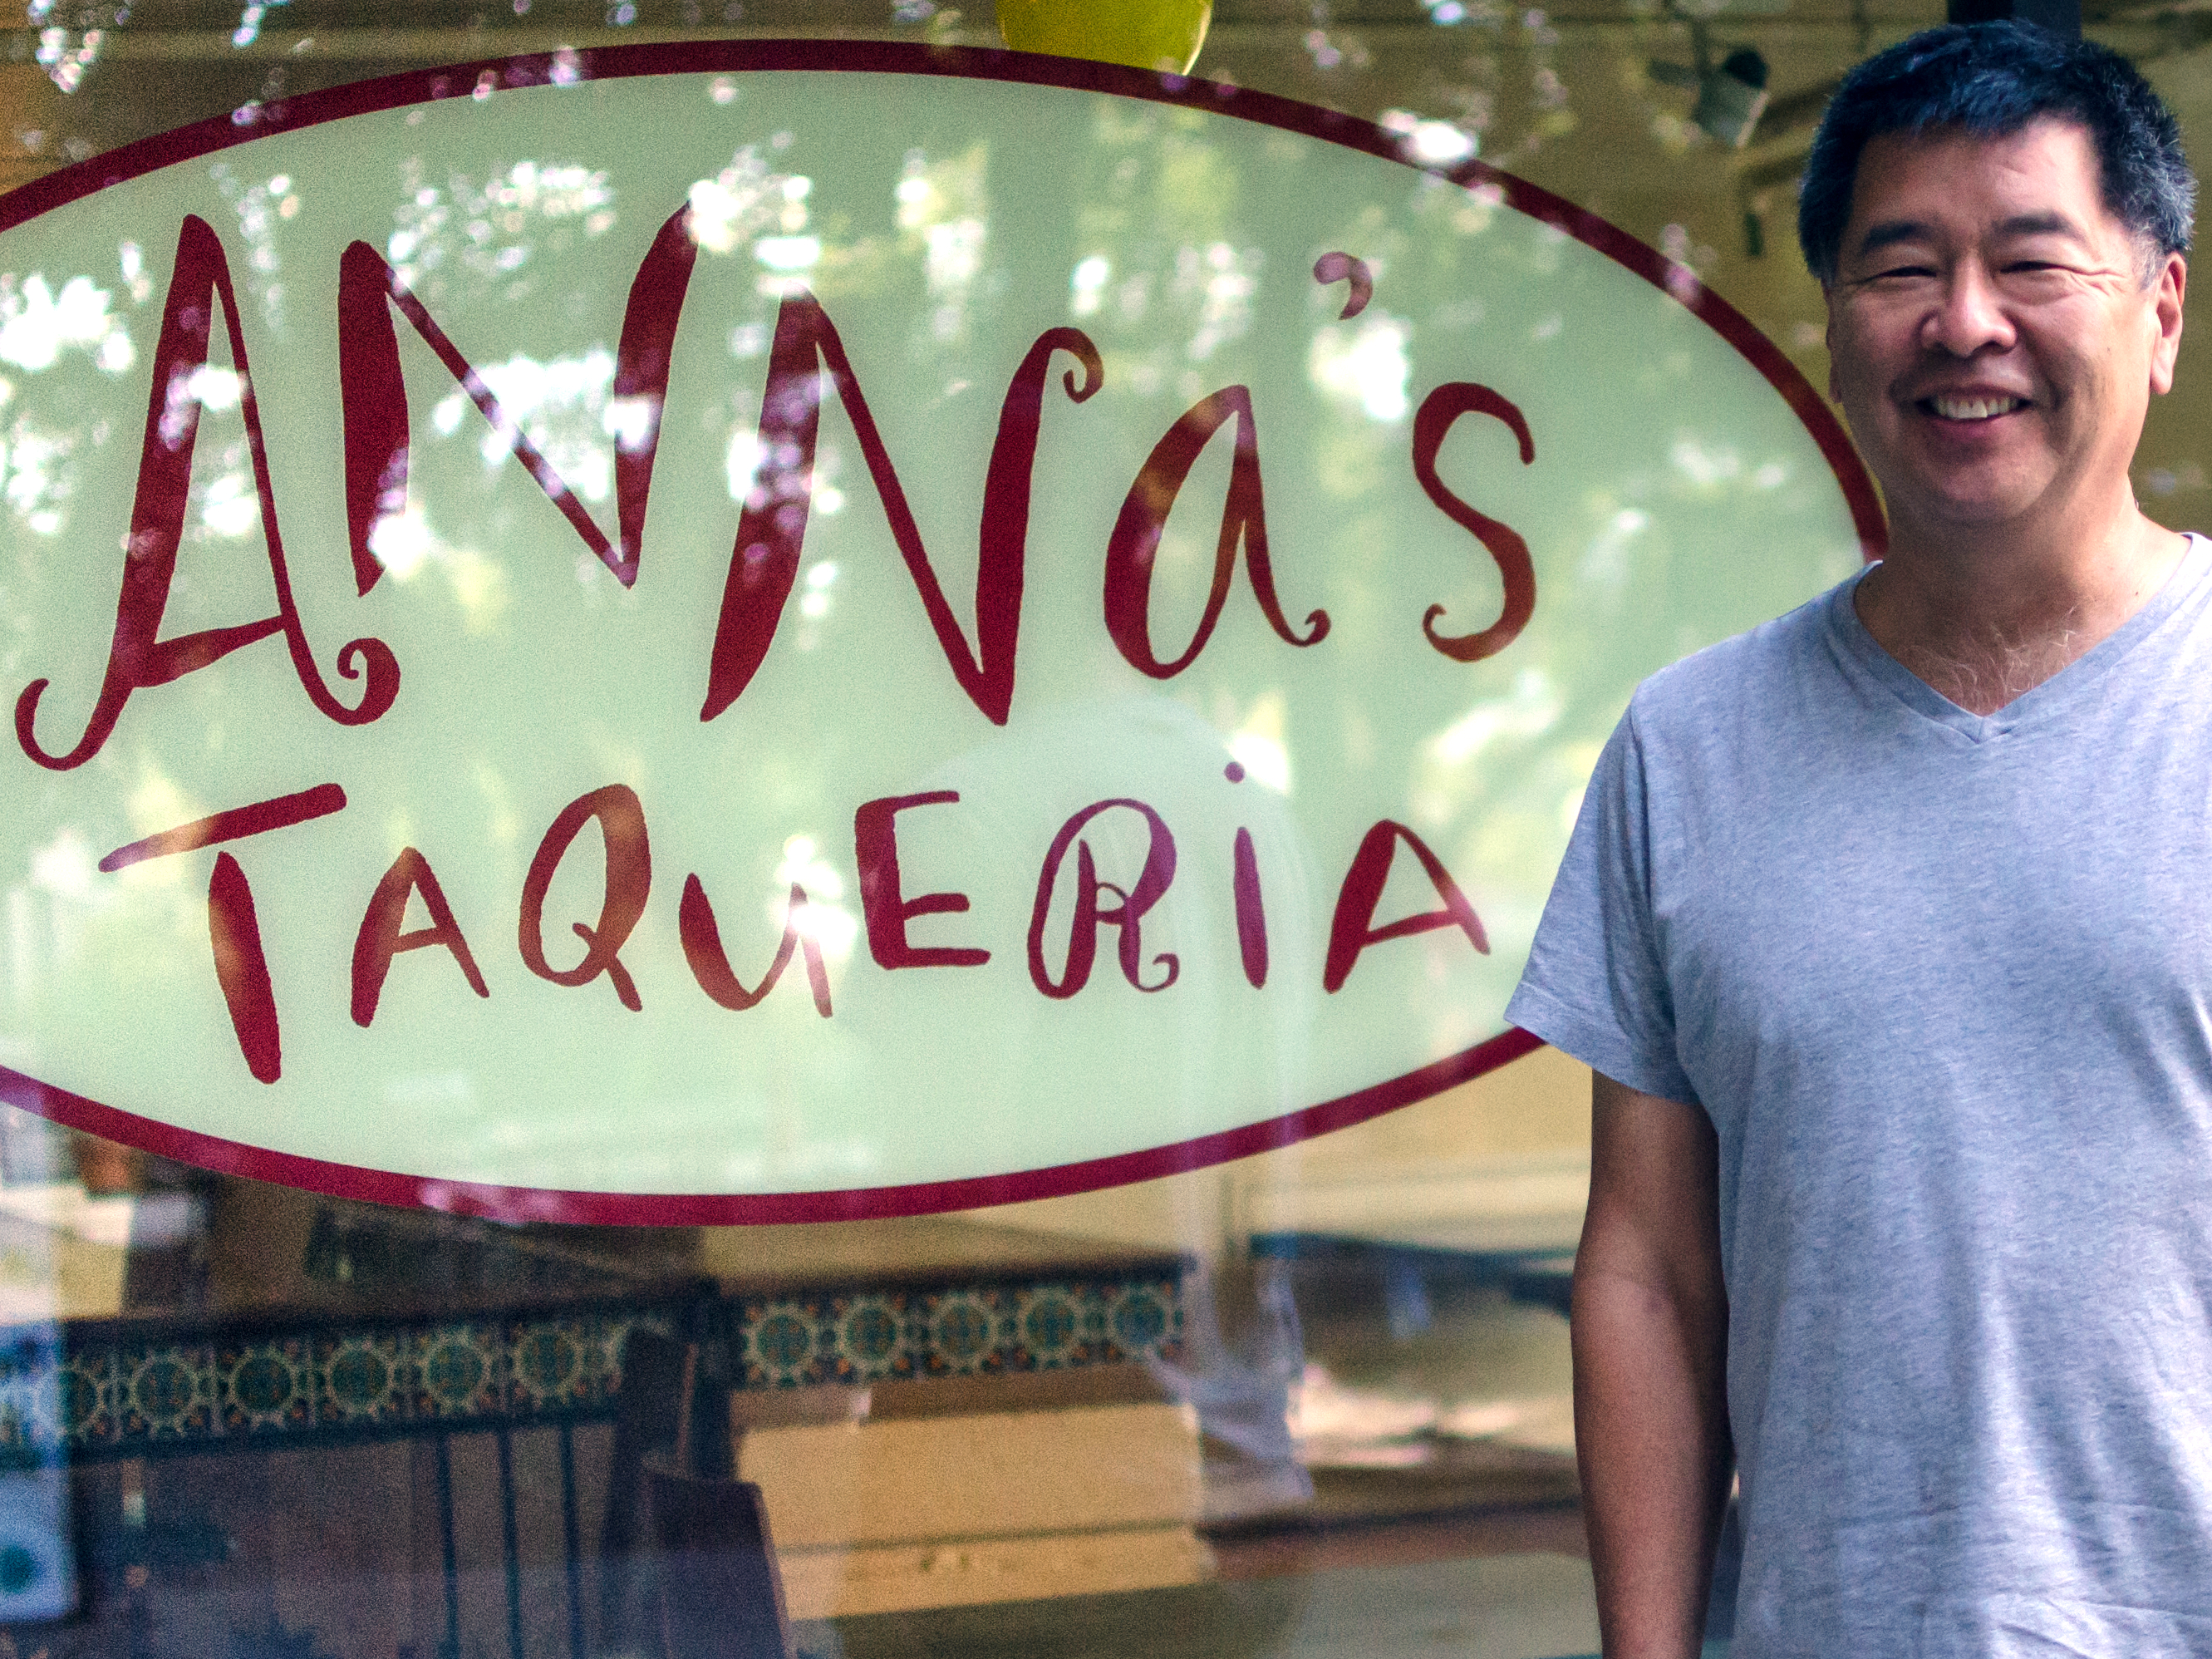 Mike Kamio, owner of Anna's Taqueria, by the MIT location.